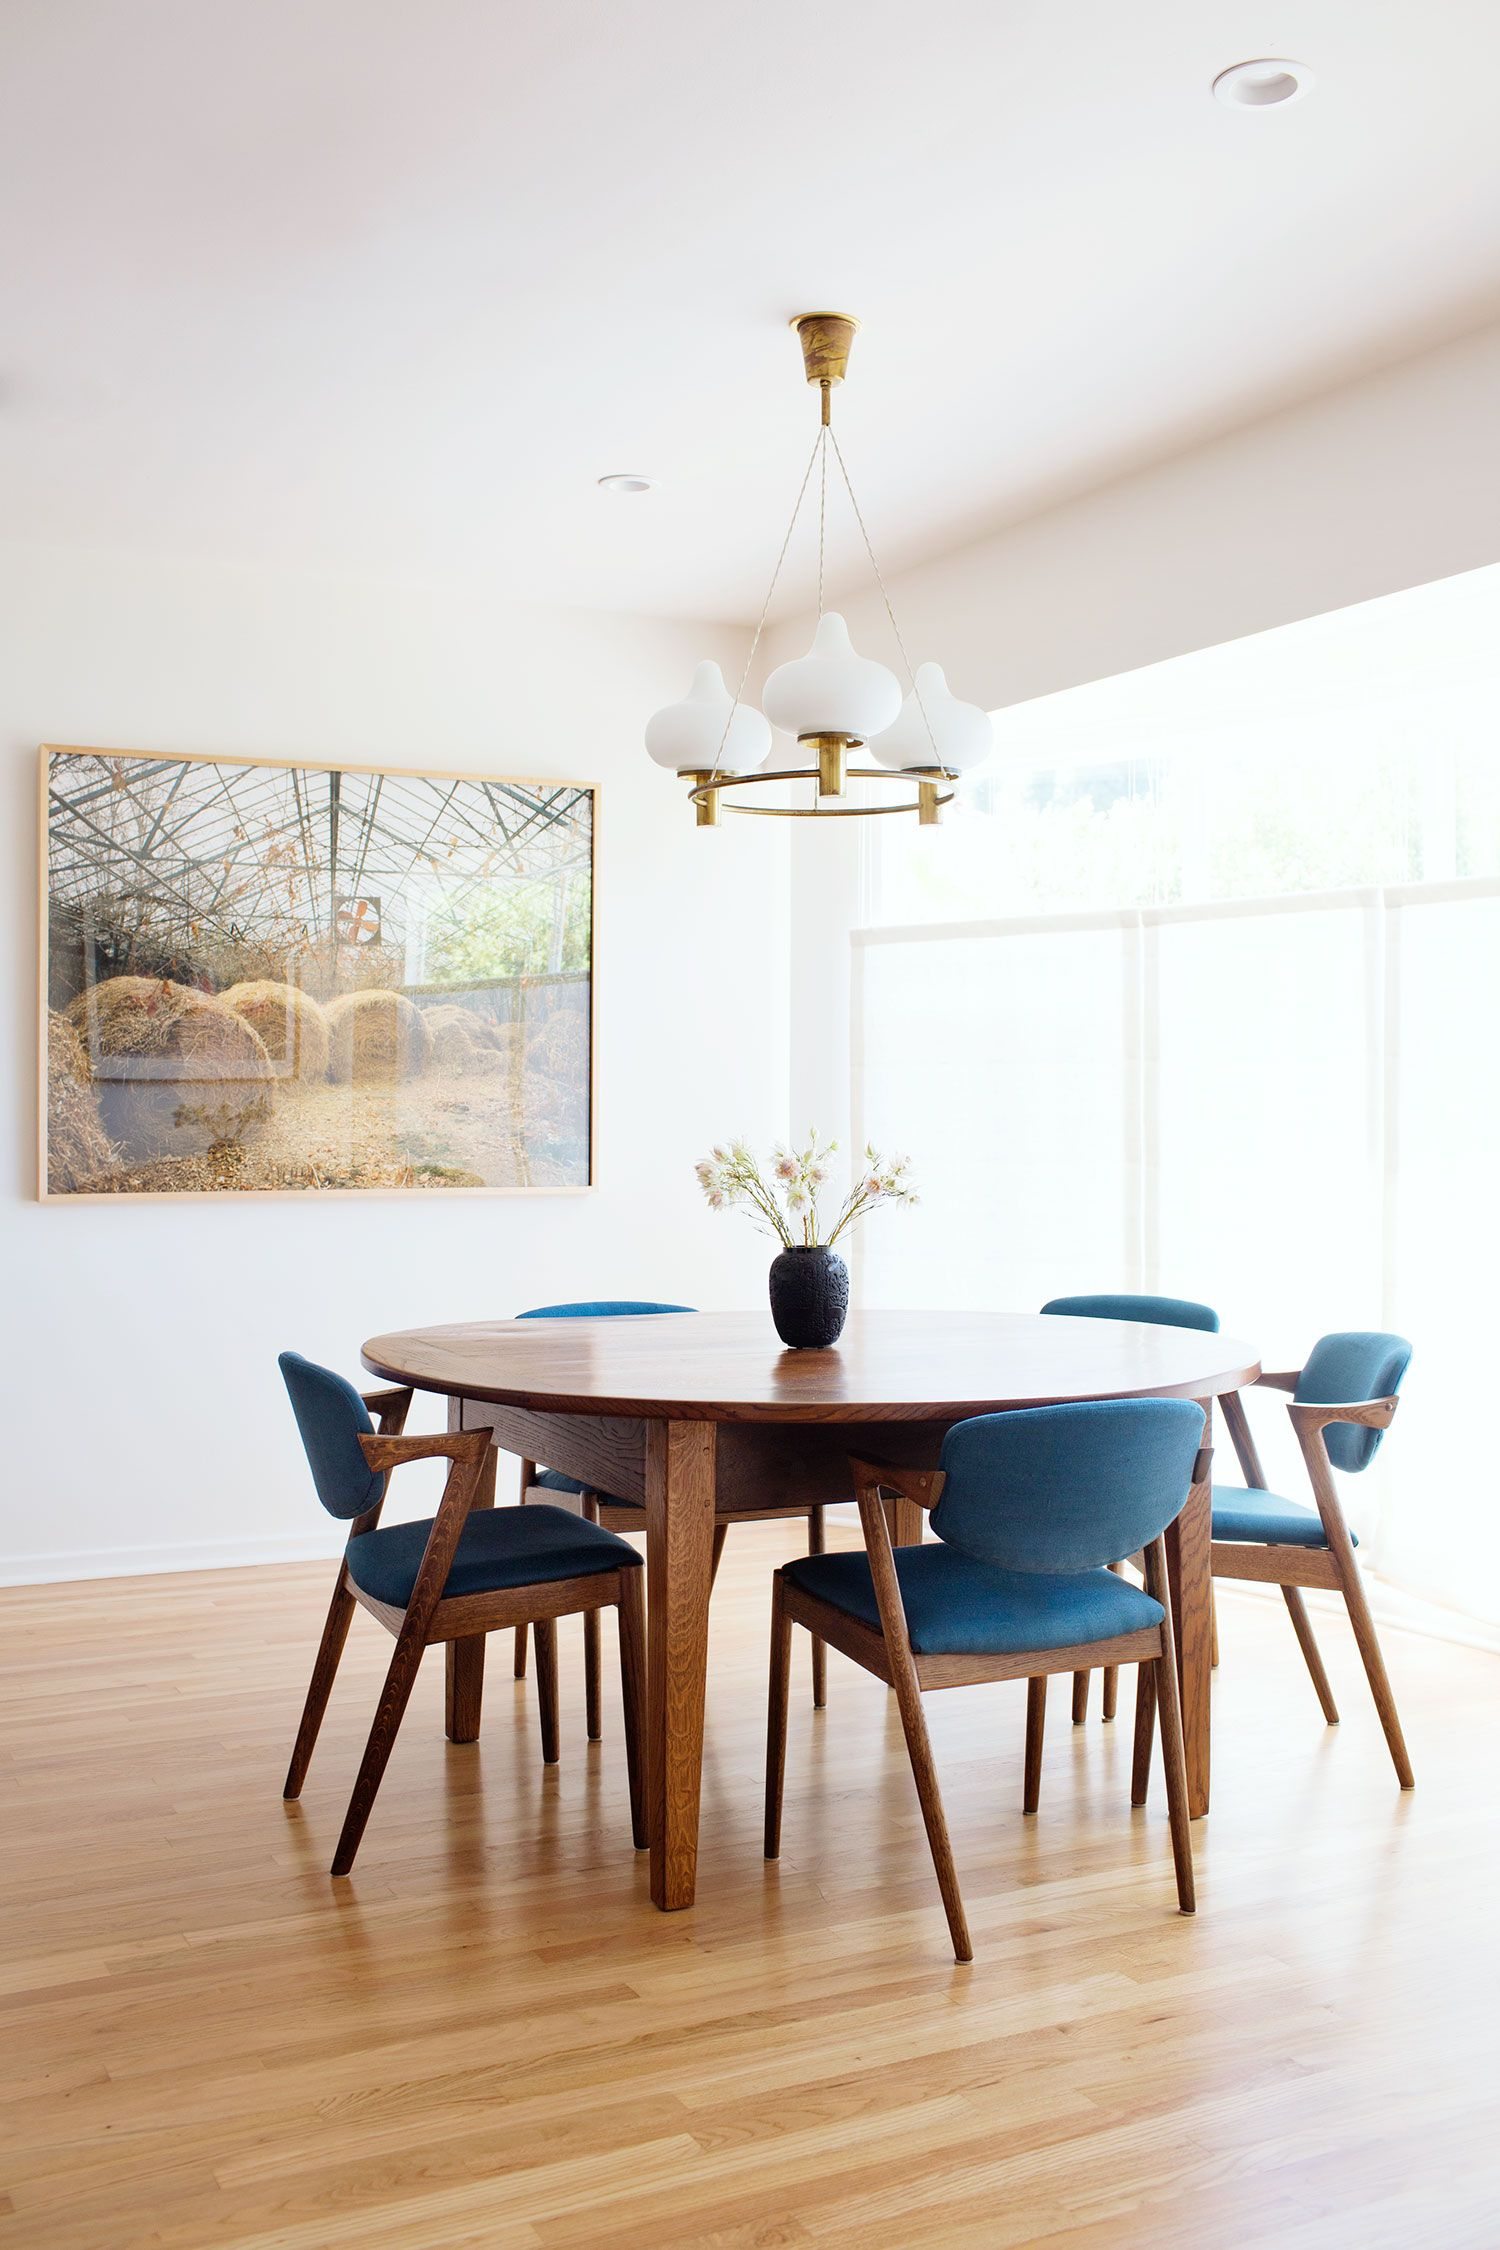 Minimalist mid century modern inspired dining room decor with blue room dzzzfo